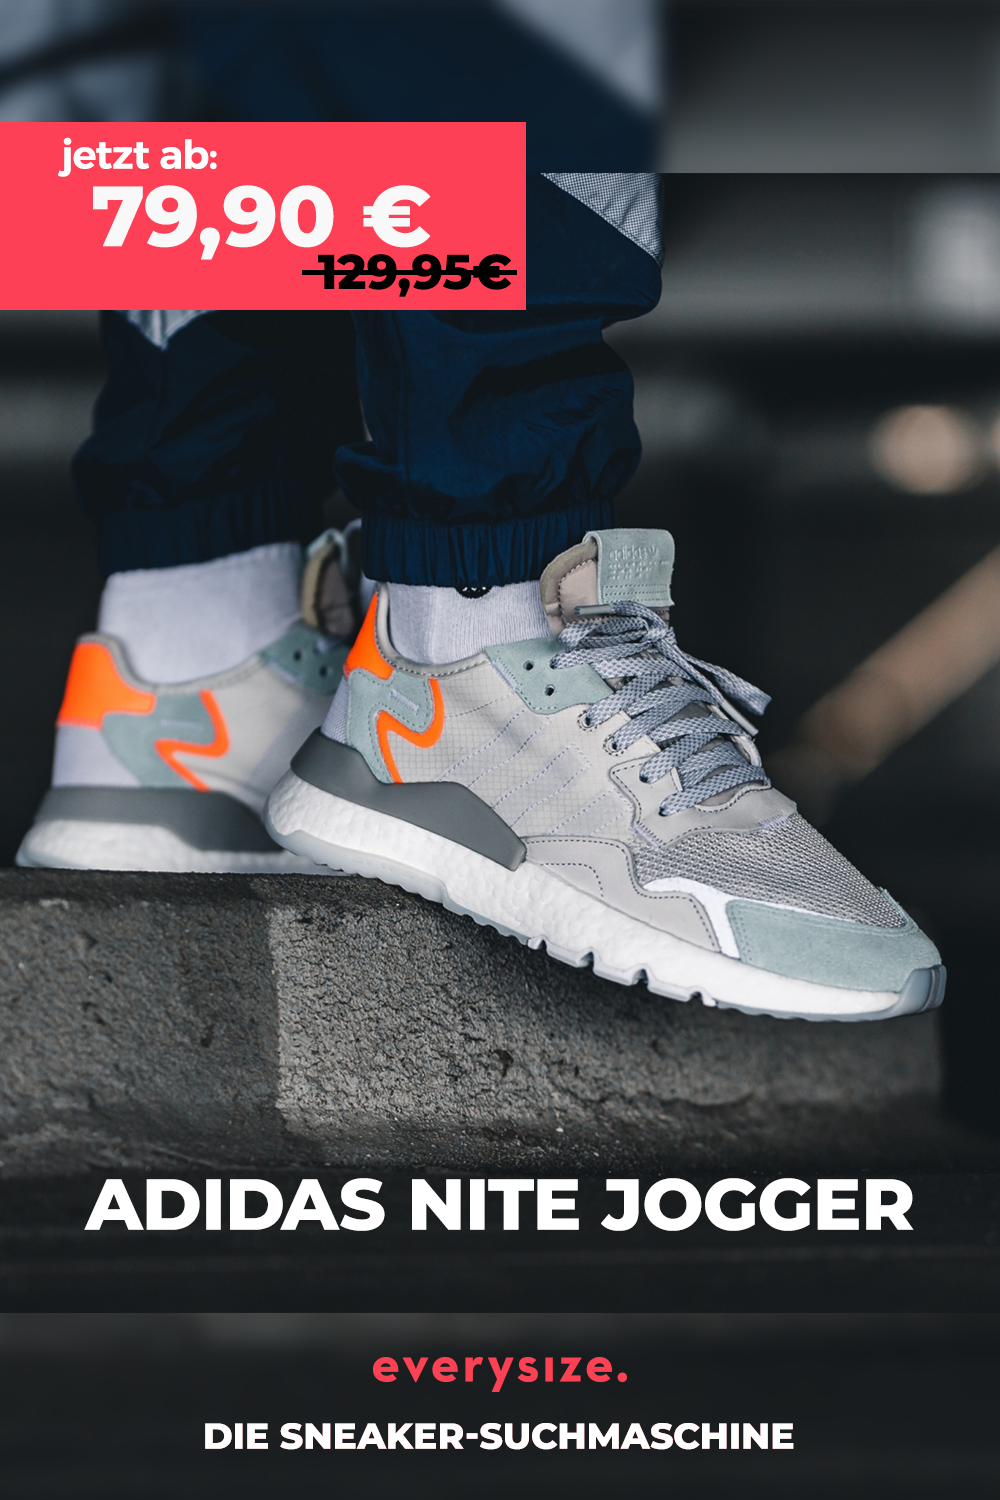 adidas Originals Nite Jogger in grau BD7956 in 2020